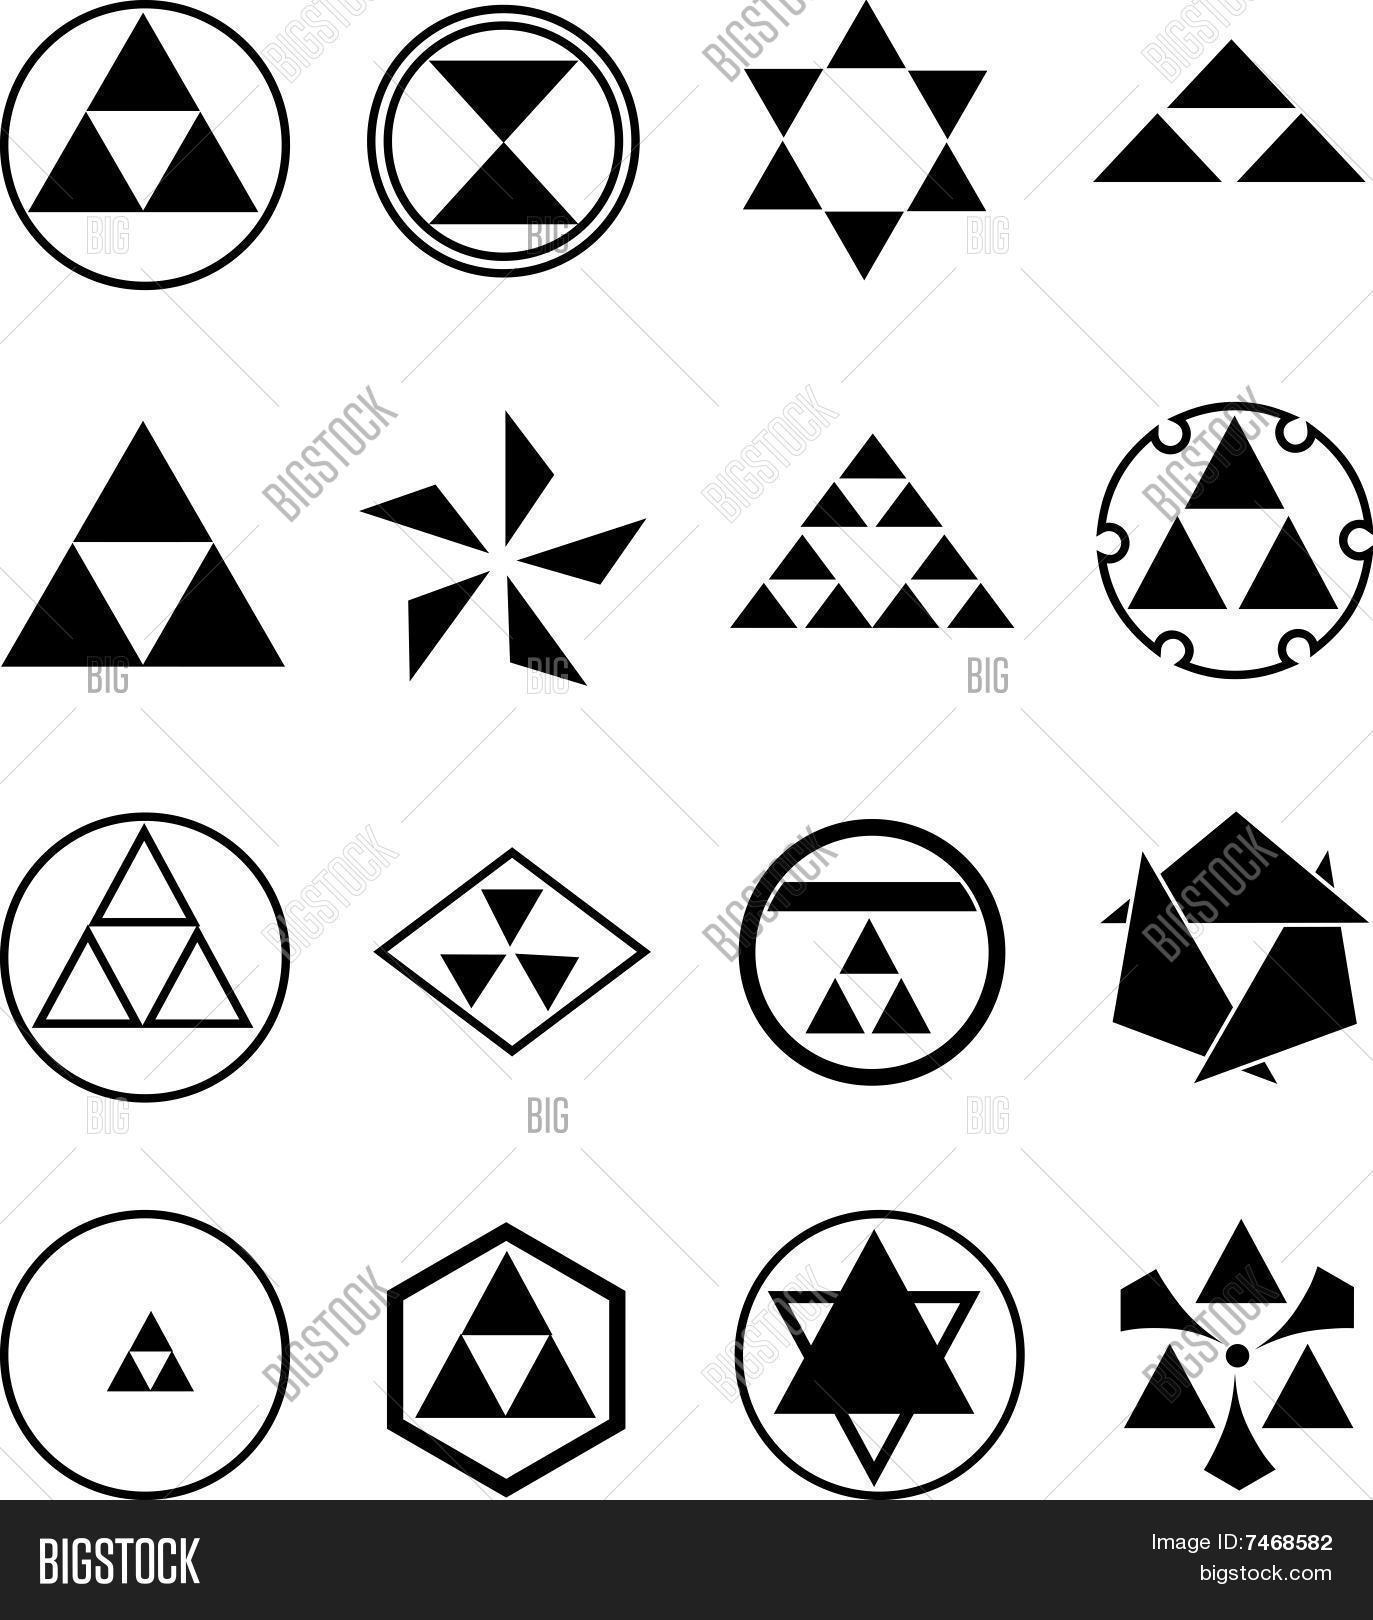 Taoism religious symbols choice image symbol and sign ideas various religious symbols vector photo bigstock various religious symbols buycottarizona buycottarizona